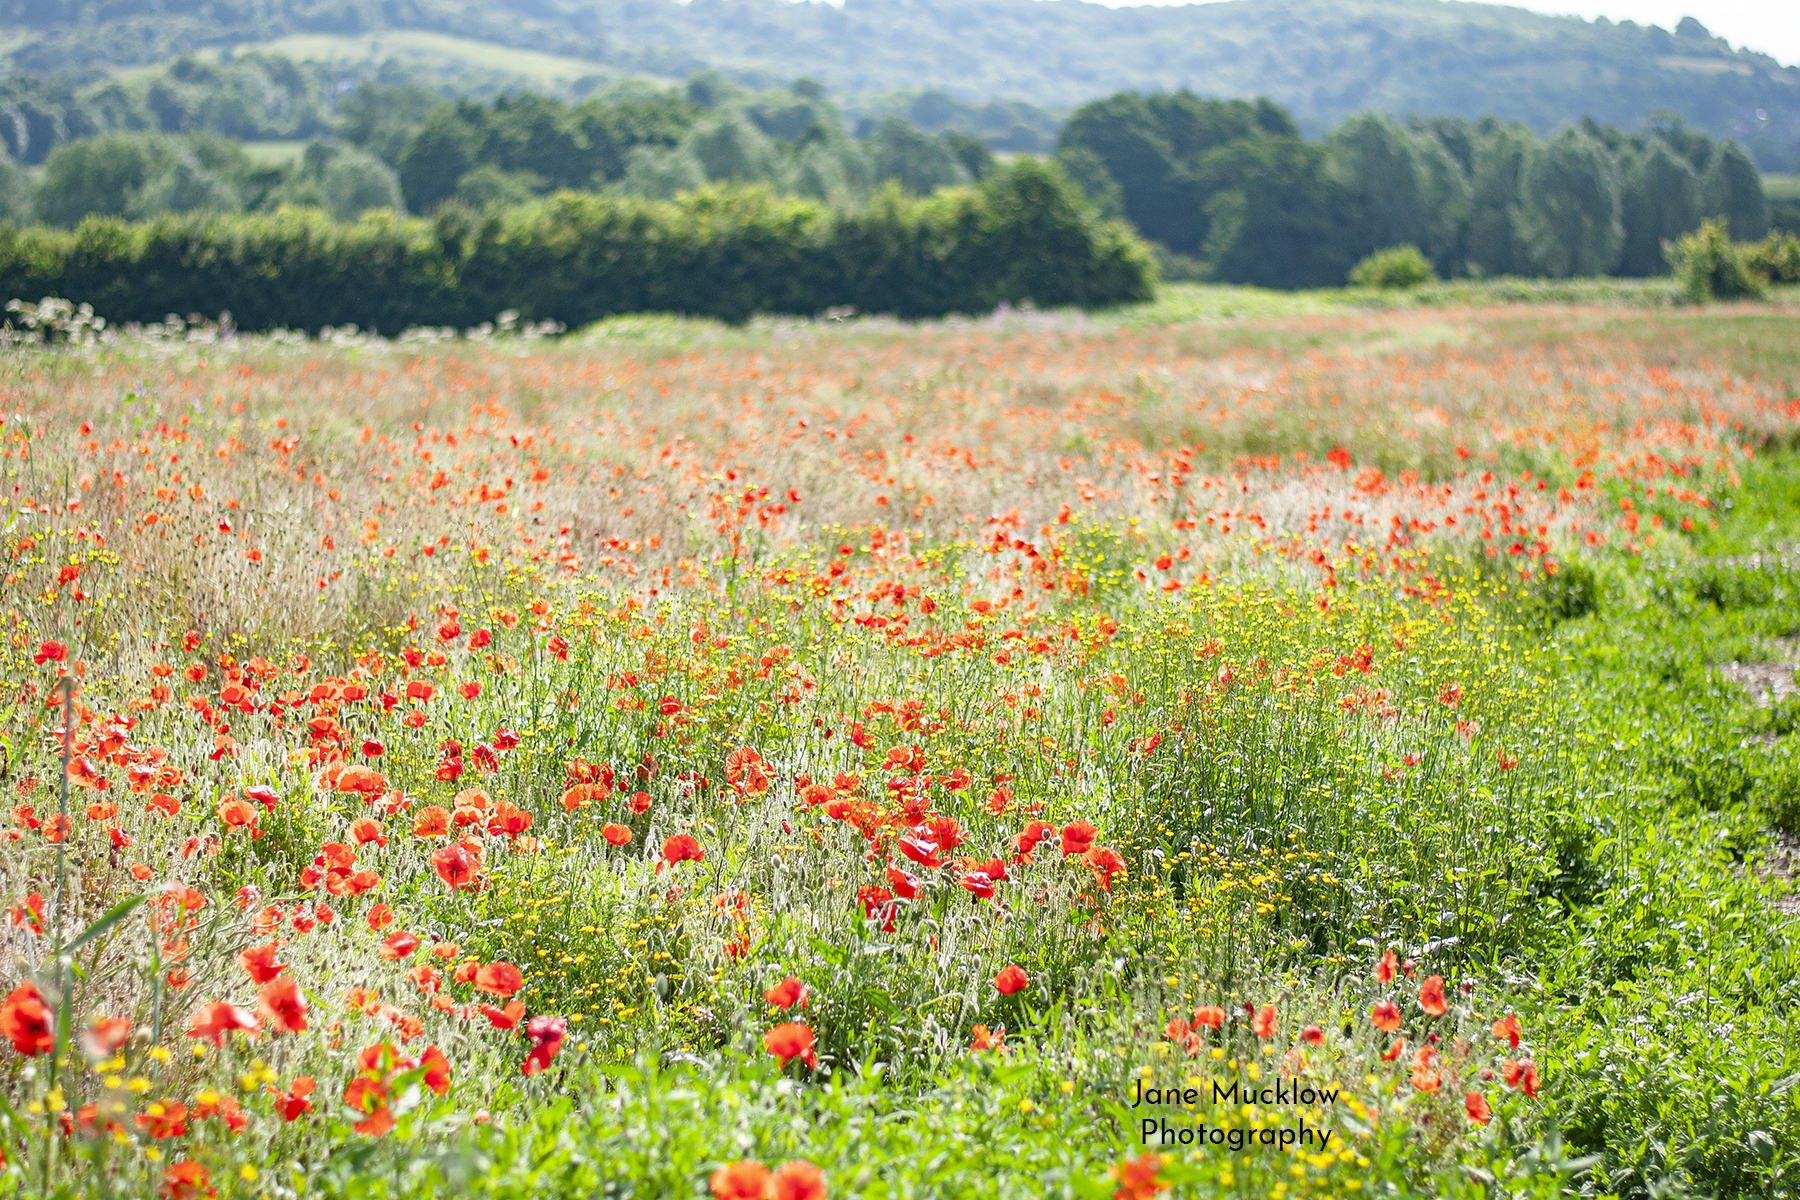 Photo of the poppy field between Otford and Shoreham, by Jane Mucklow